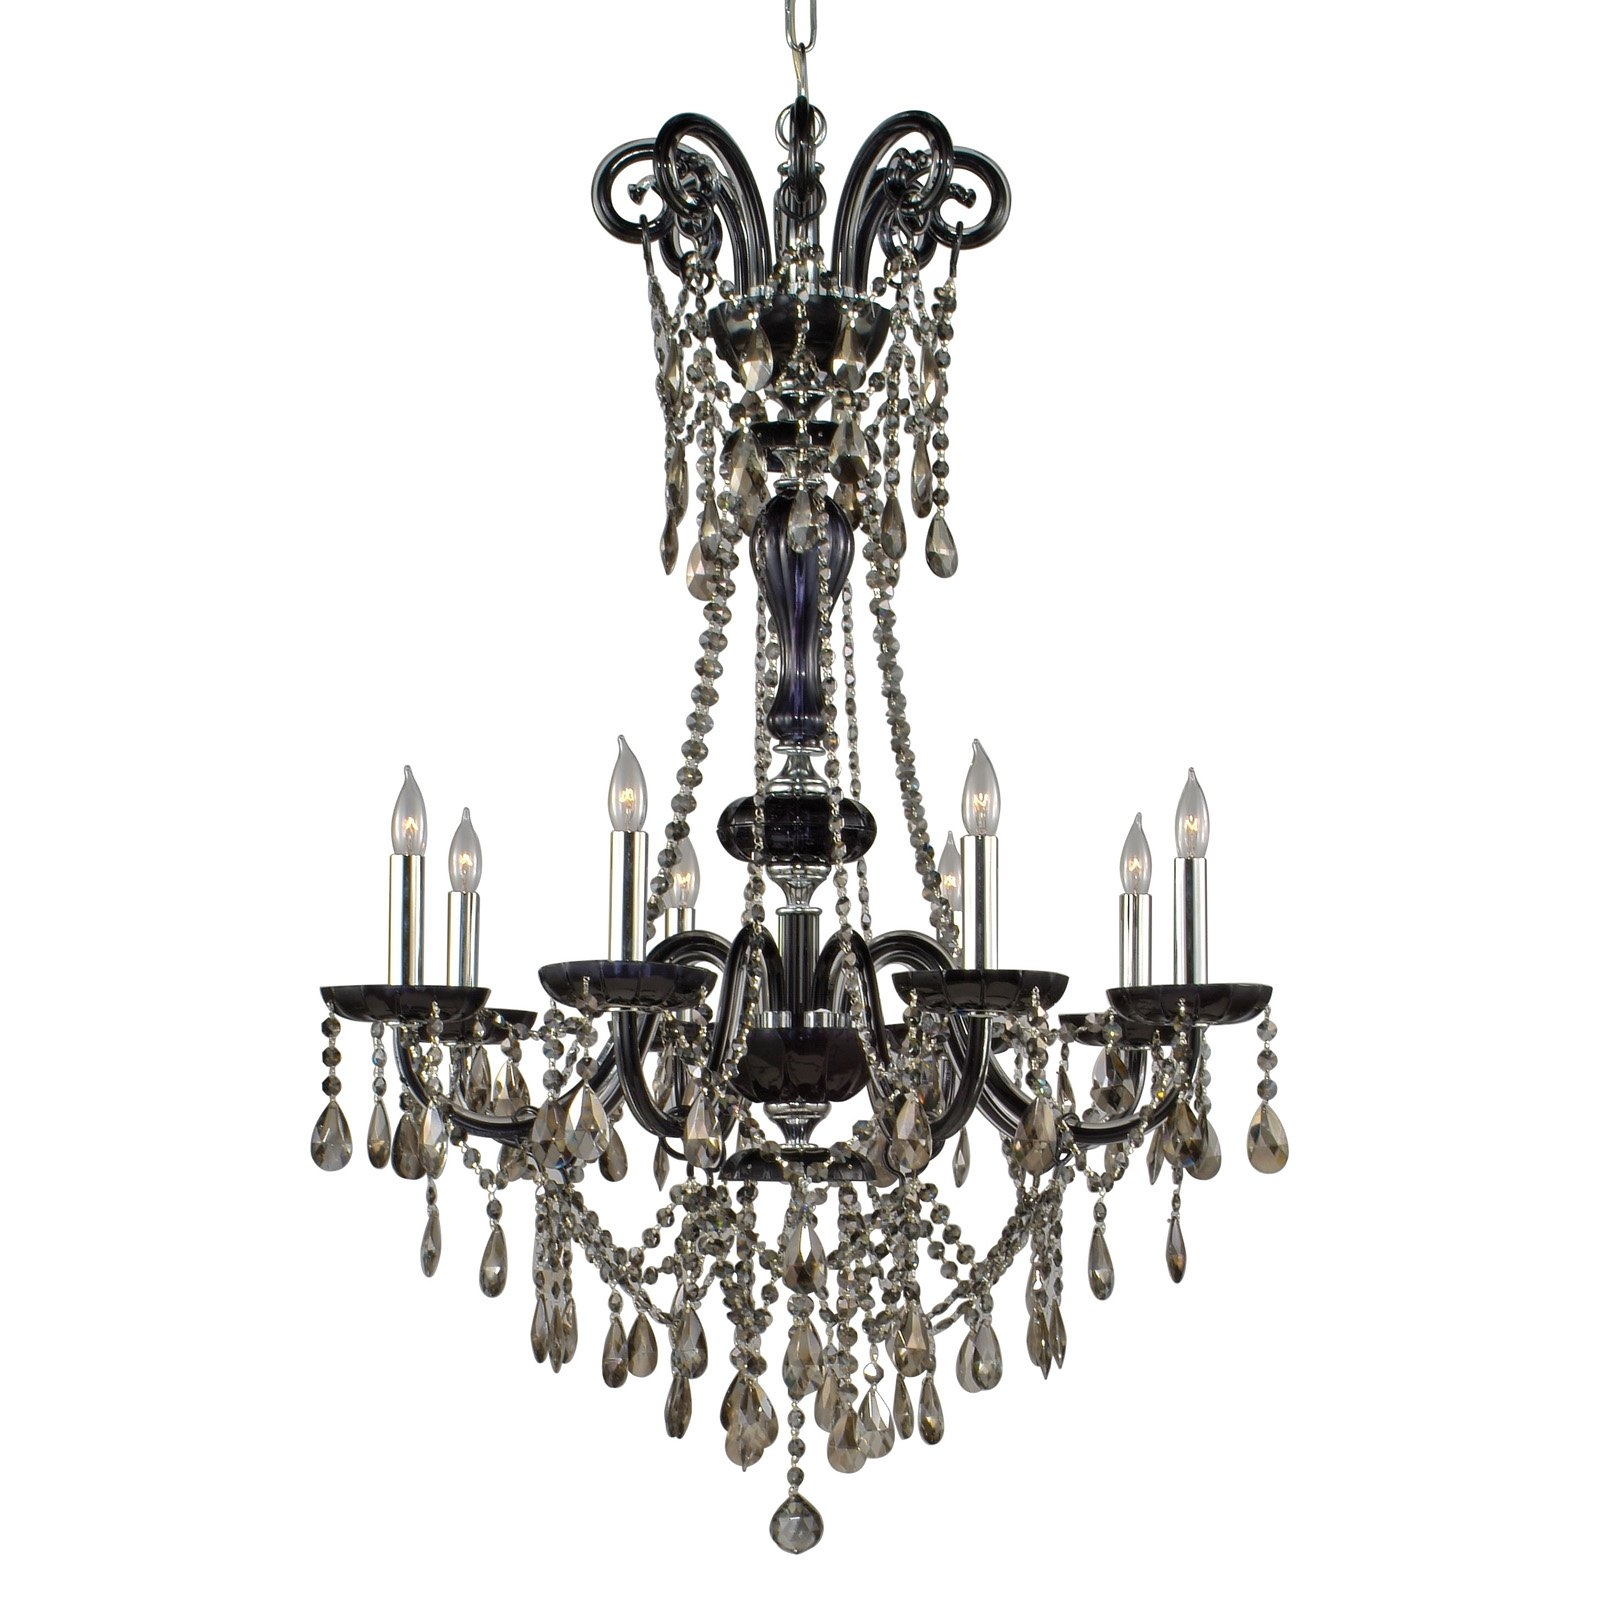 Air Versailles Chandelier 30w In Black Chandeliers At Hayneedle With Black Gothic Chandelier (Image 3 of 15)